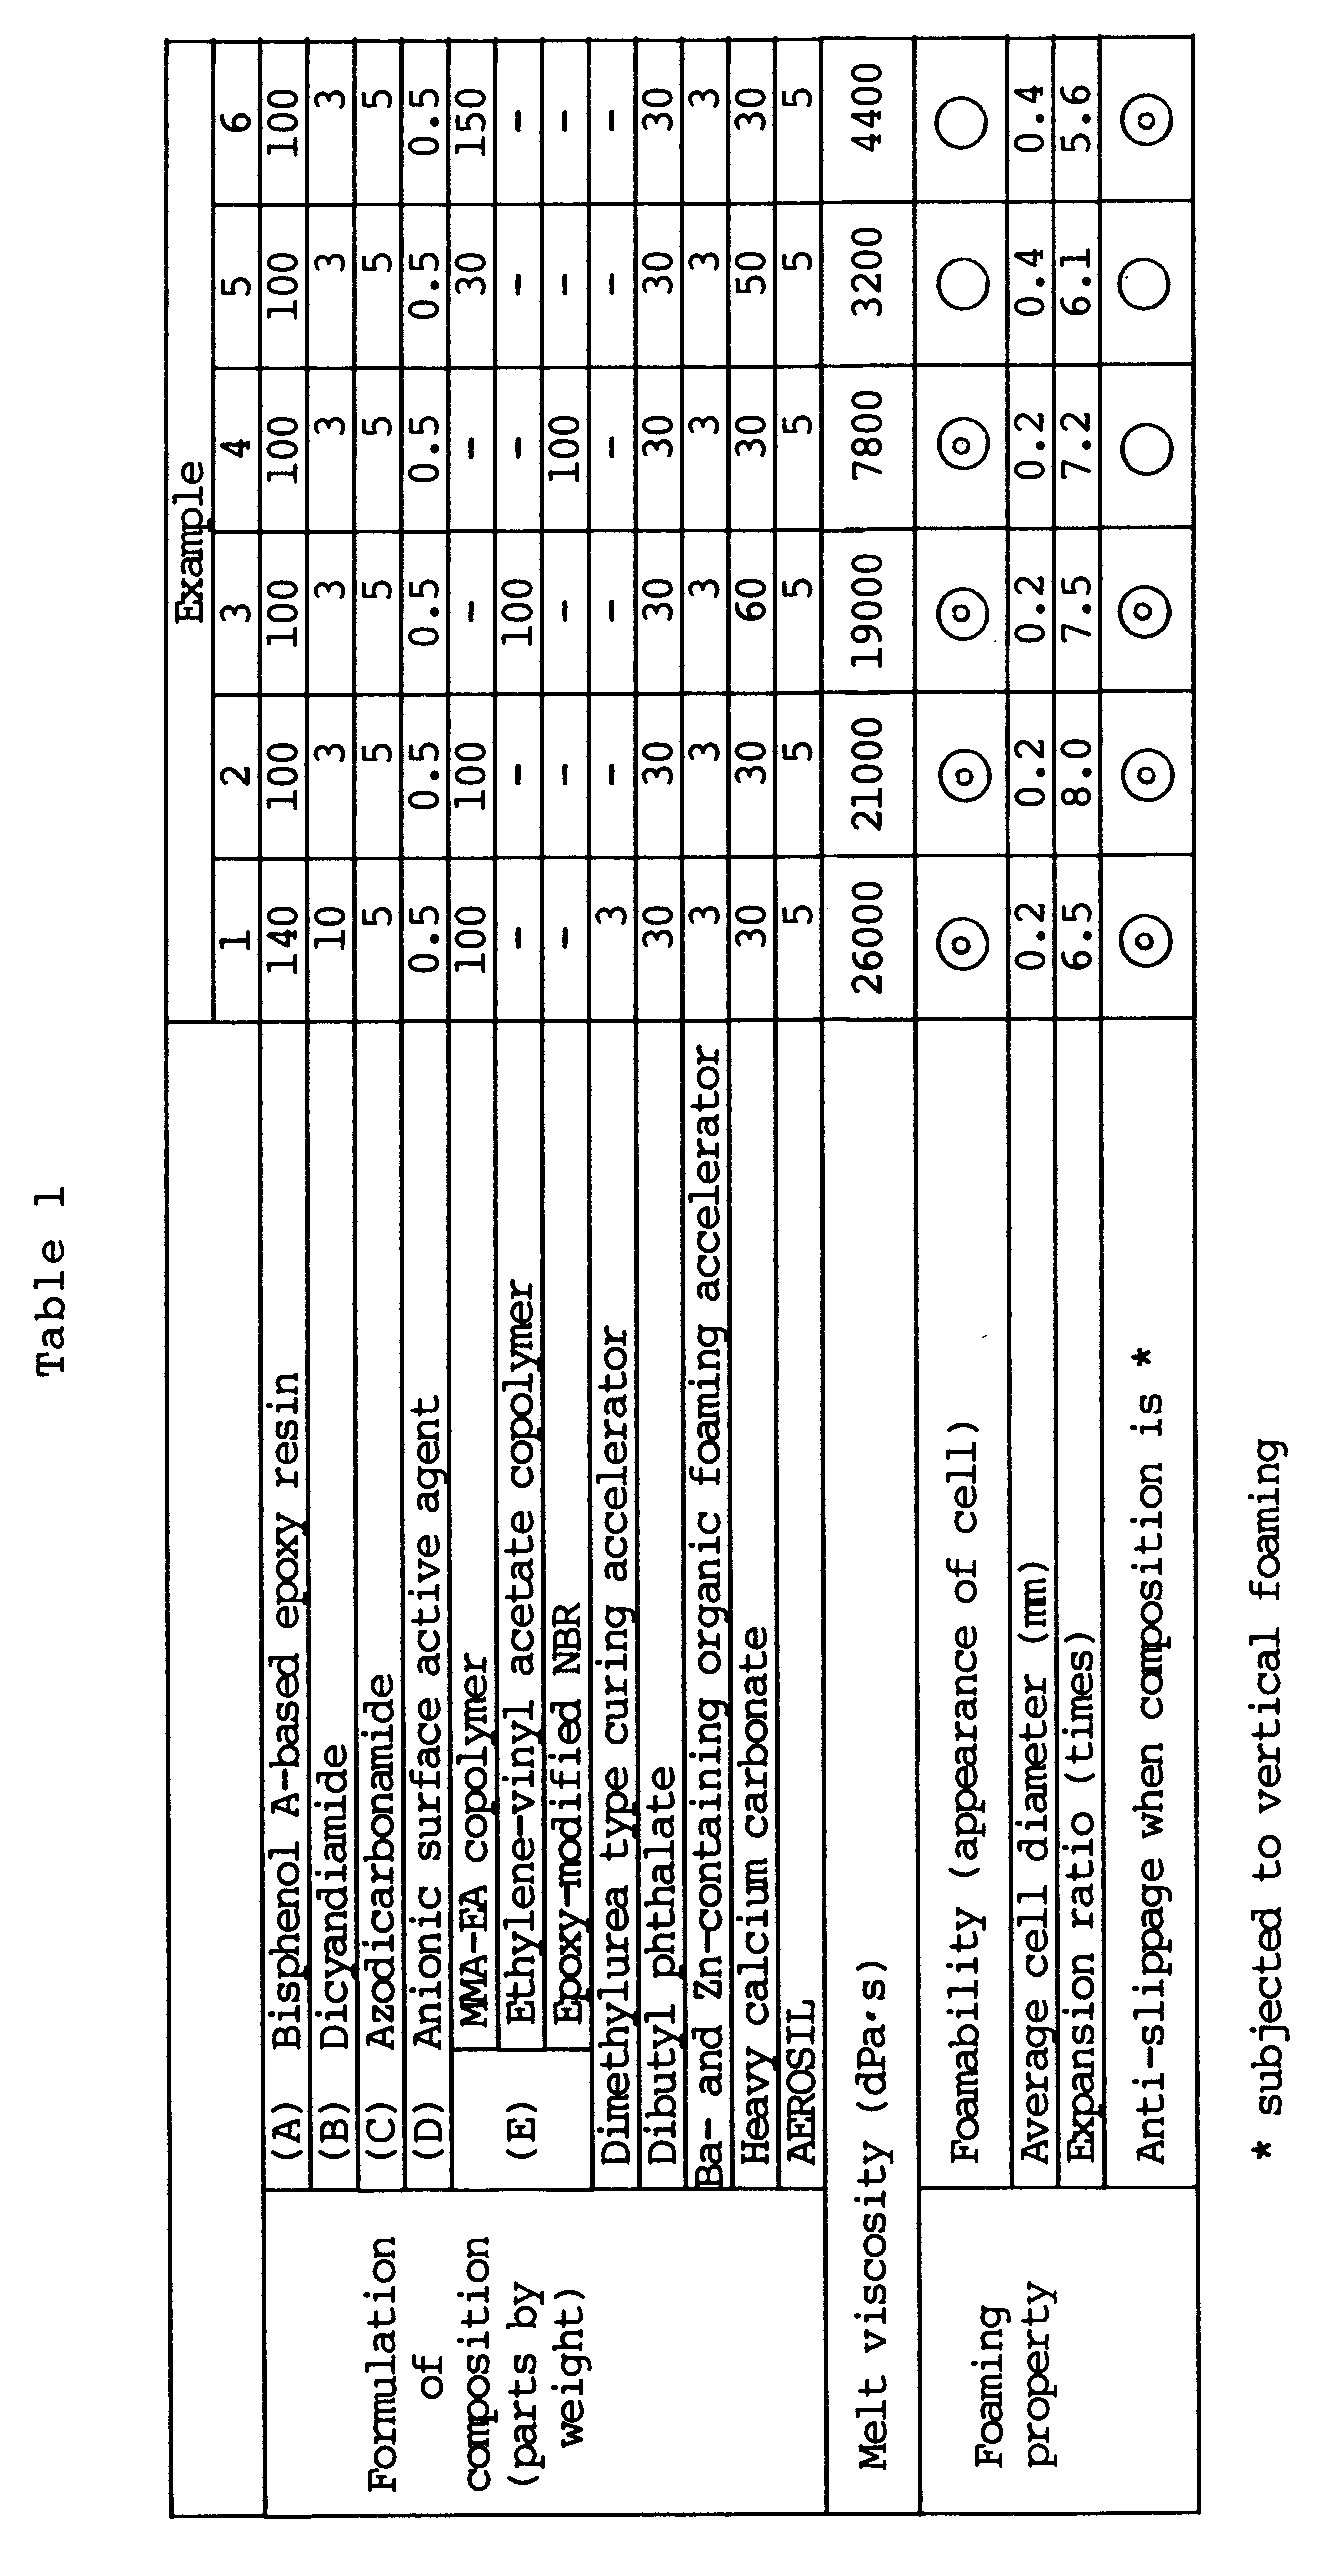 EP0500009A1 - Foamable epoxy resin composition - Google Patents